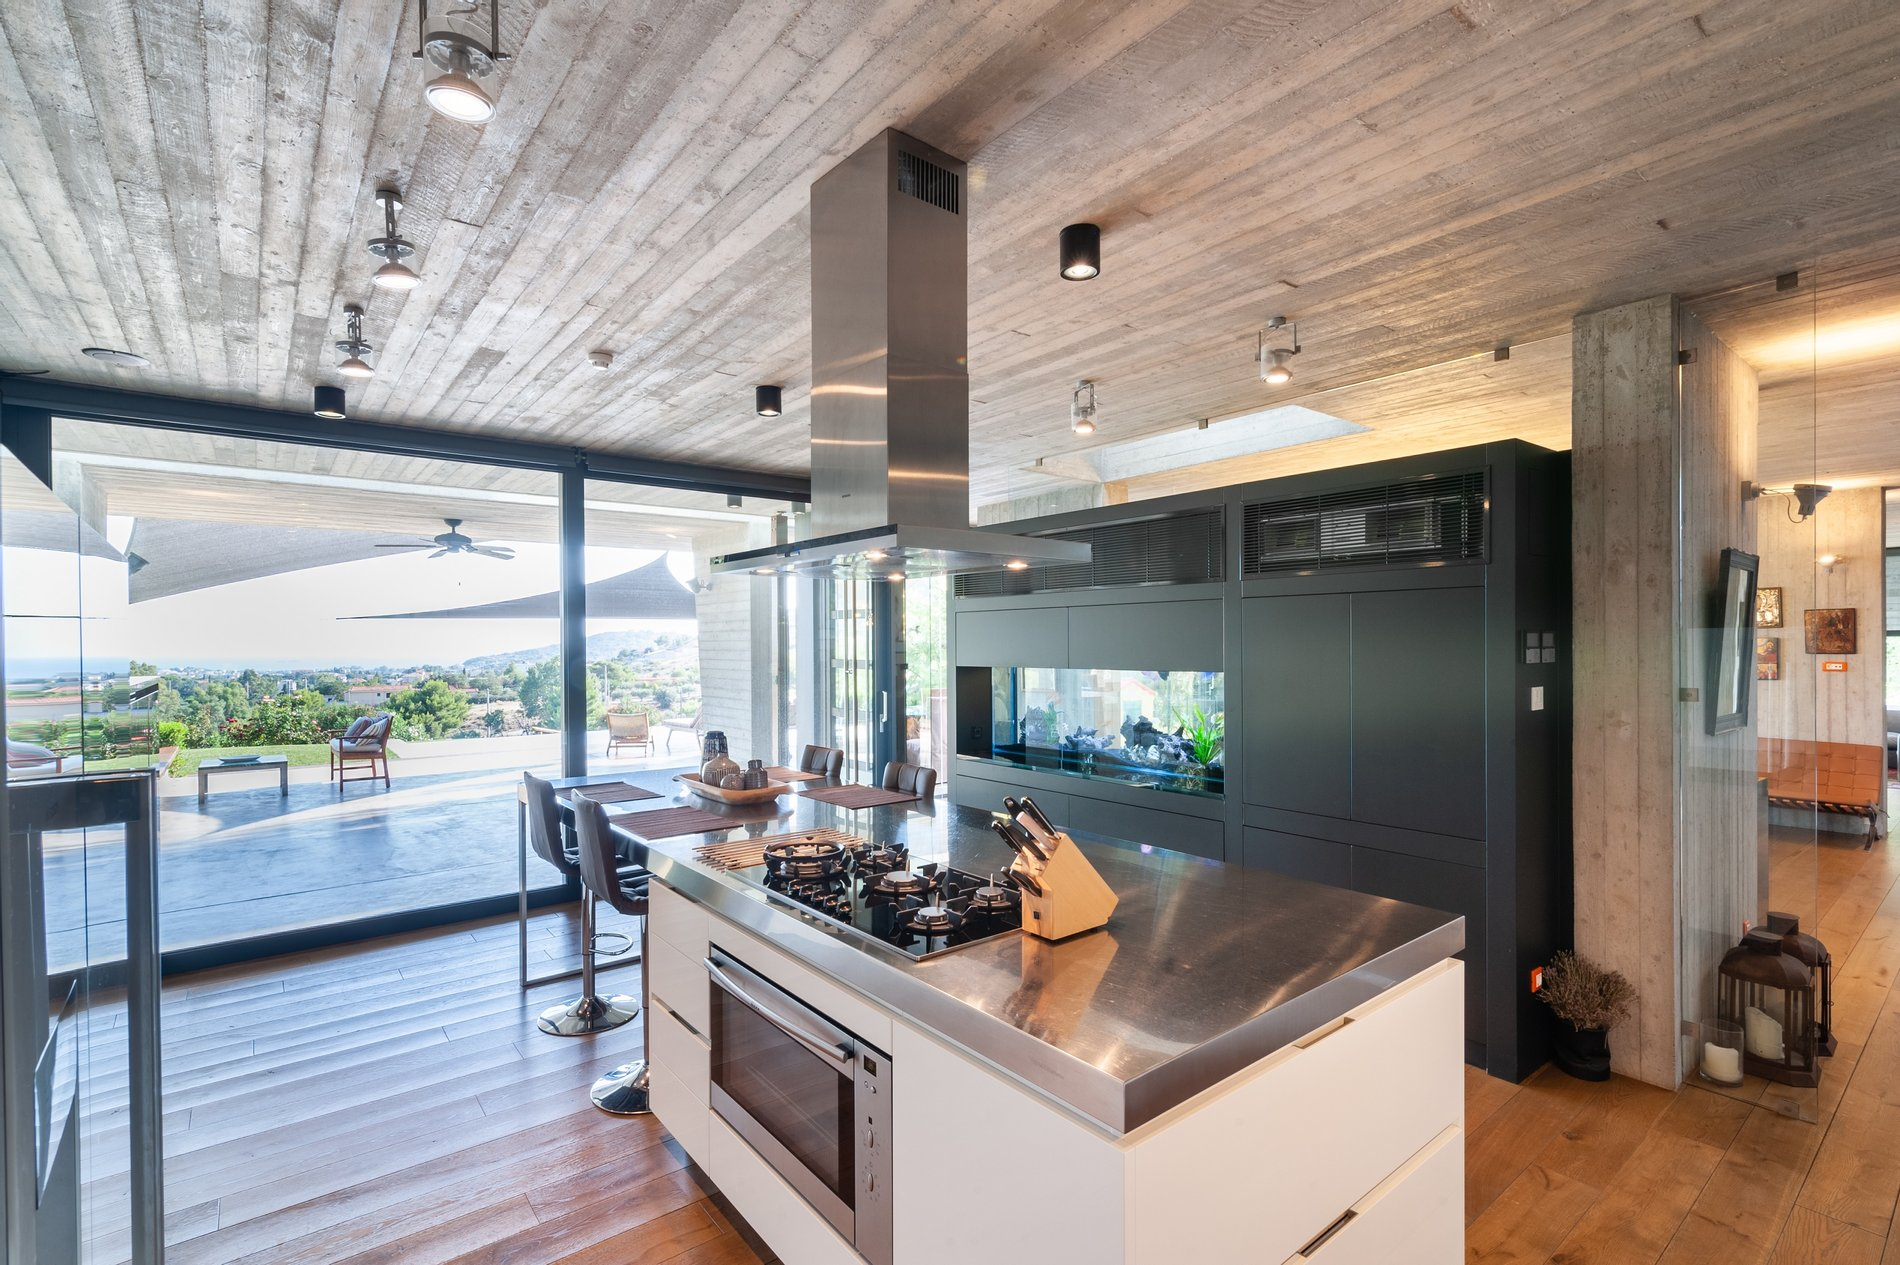 Modern kitchen with black windows and gliding doors.